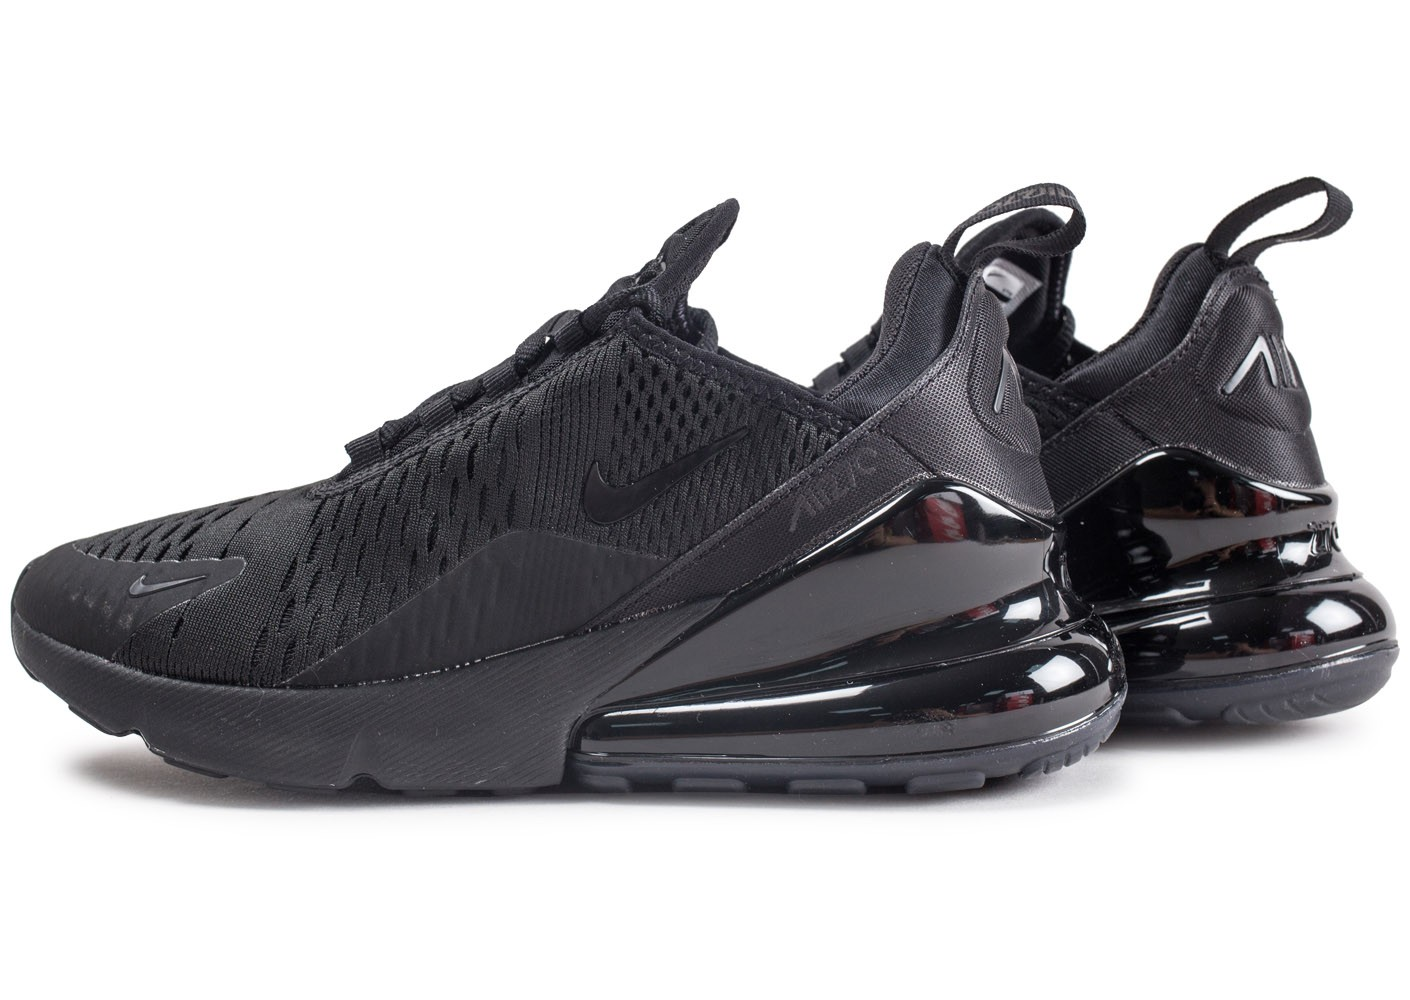 Nike Air Max 270 noire femme - Chaussures Baskets femme ...